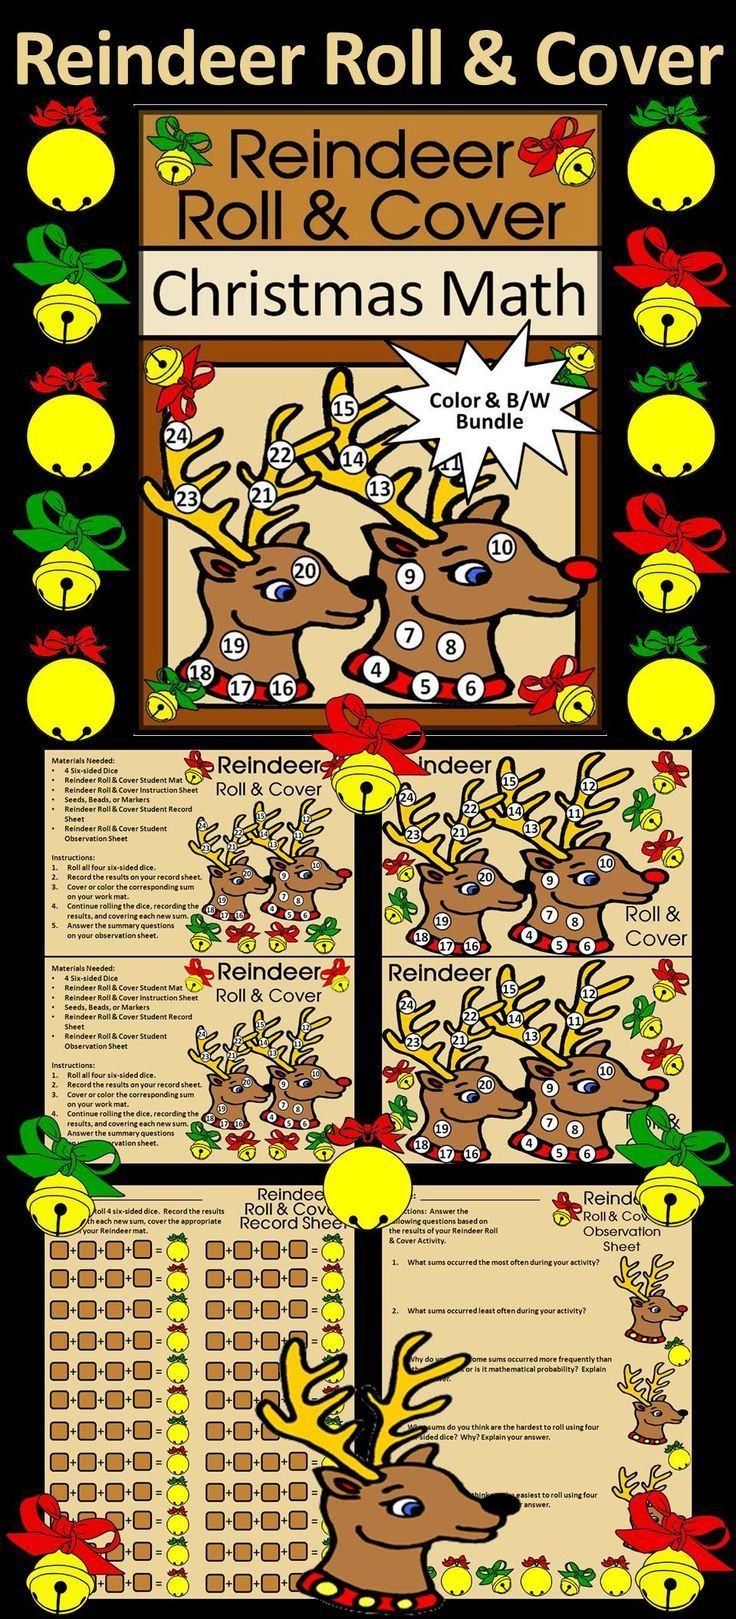 Reindeer Roll & Cover Christmas Math Activity Packet:  Give your students a fun and festive way to practice addition in series in a hands-on way using 4 six-sided dice and seeds, beads, or other small items as counters.   Reindeer Roll & Cover Christmas M